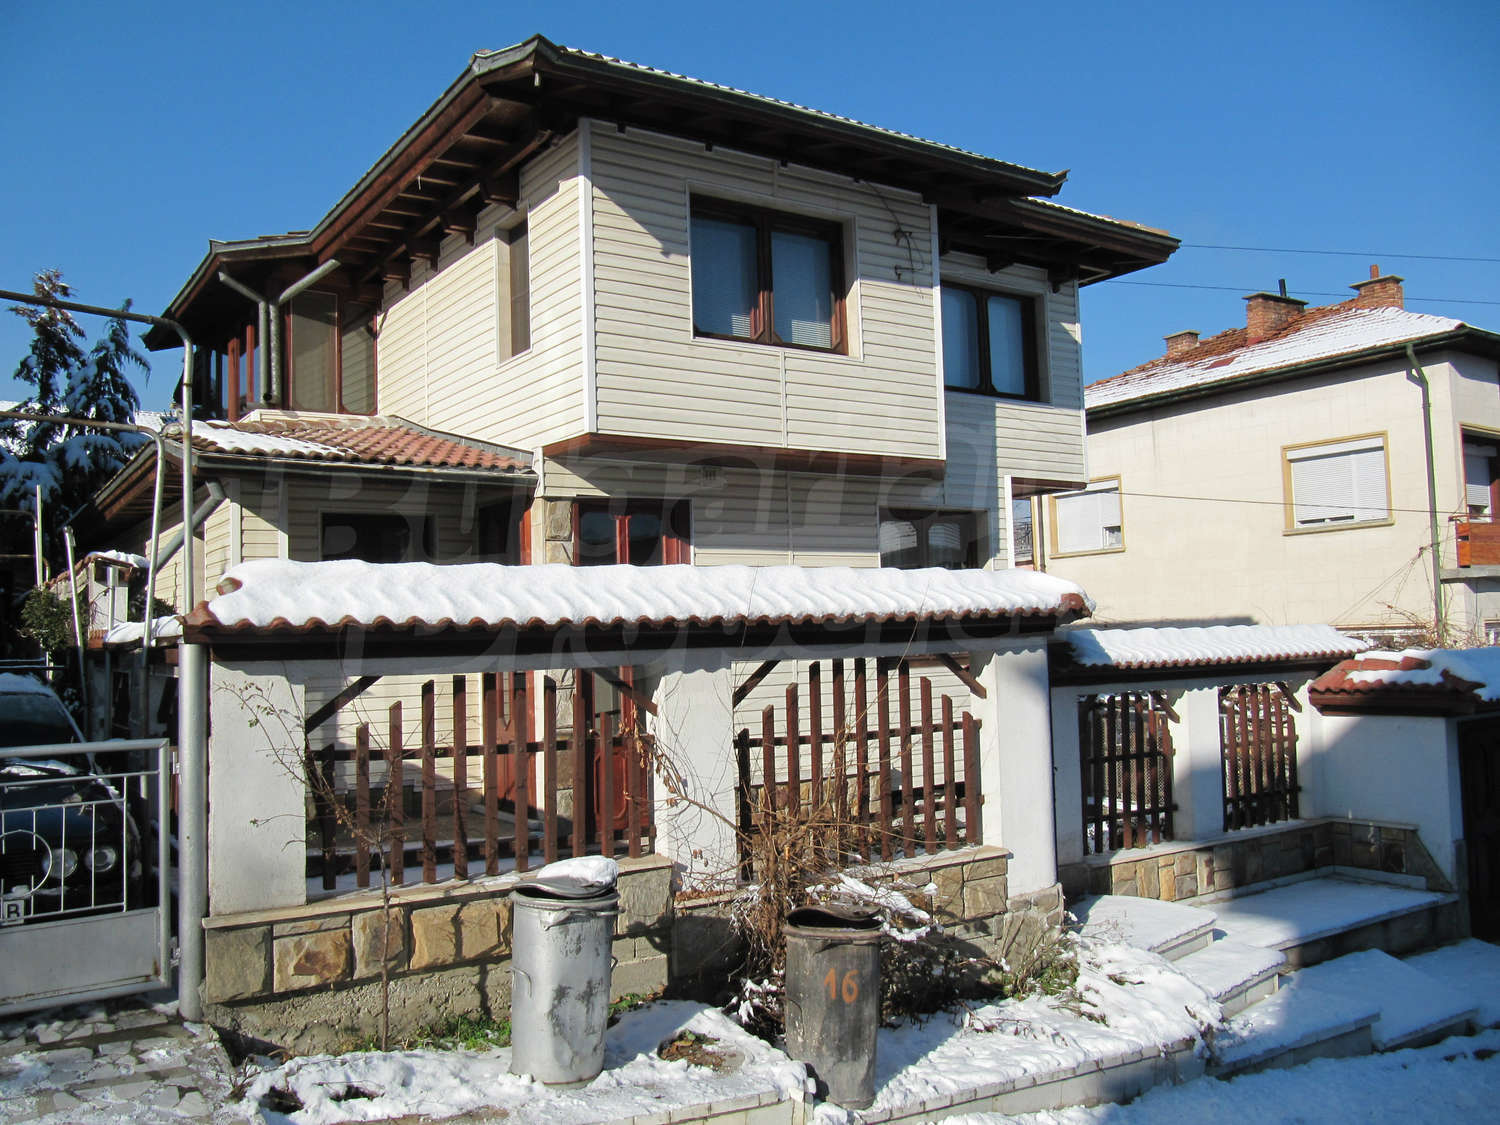 House for sale in velingrad spa complex maxi bulgaria for House with courtyard in center